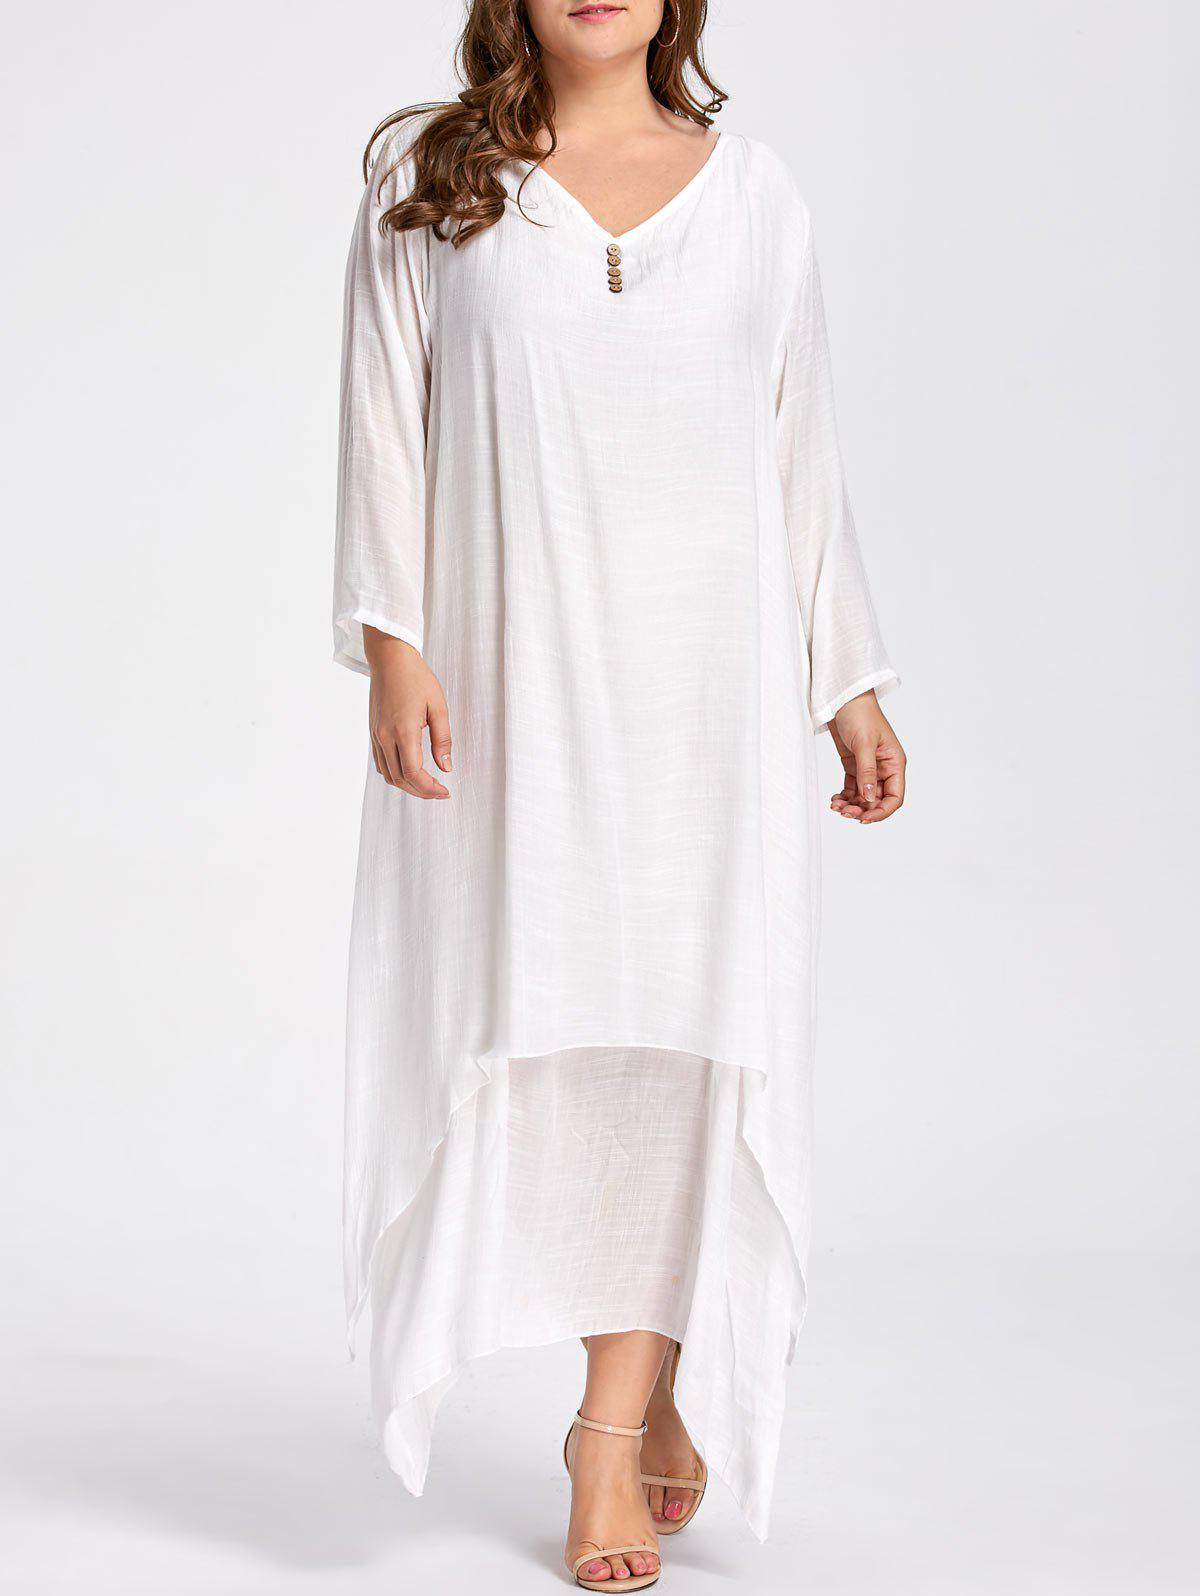 Plus Size Button Embellished Maxi Layered DressWOMEN<br><br>Size: 5XL; Color: WHITE; Style: Casual; Material: Cotton Blend,Linen,Polyester; Silhouette: Asymmetrical; Dresses Length: Ankle-Length; Neckline: V-Neck; Sleeve Length: Long Sleeves; Embellishment: Button,Ruffles; Pattern Type: Solid Color; With Belt: No; Season: Fall,Spring,Winter; Weight: 0.3800kg; Package Contents: 1 x Dress;